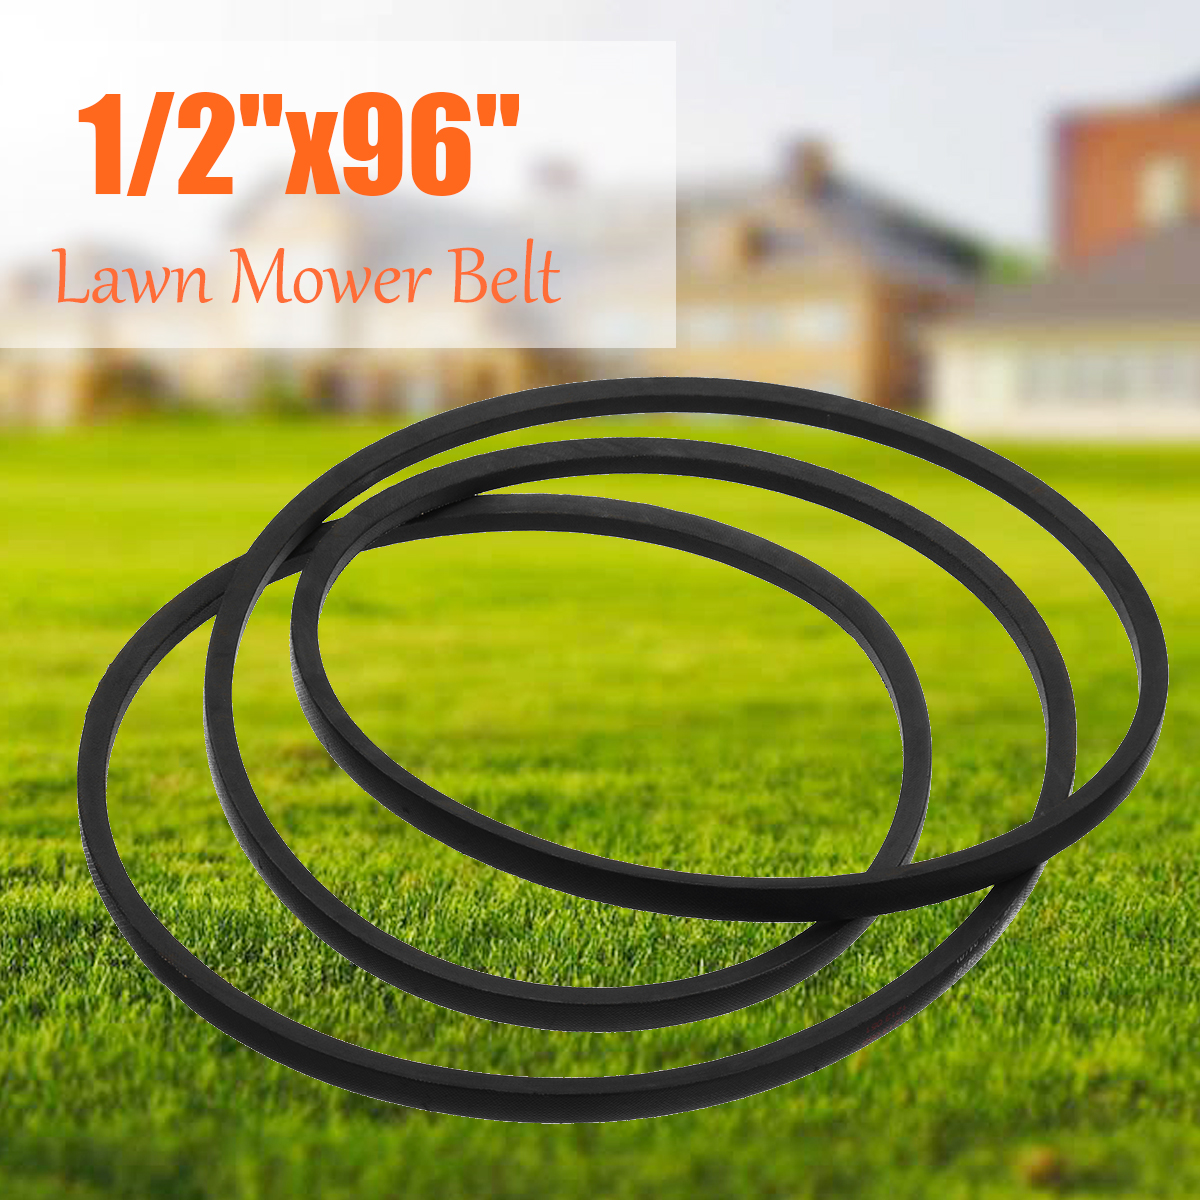 купить For Yard Machine Lawn Mower Belts Tractor Drive V-Belt for Lawn Mover Parts 13mm 1/2